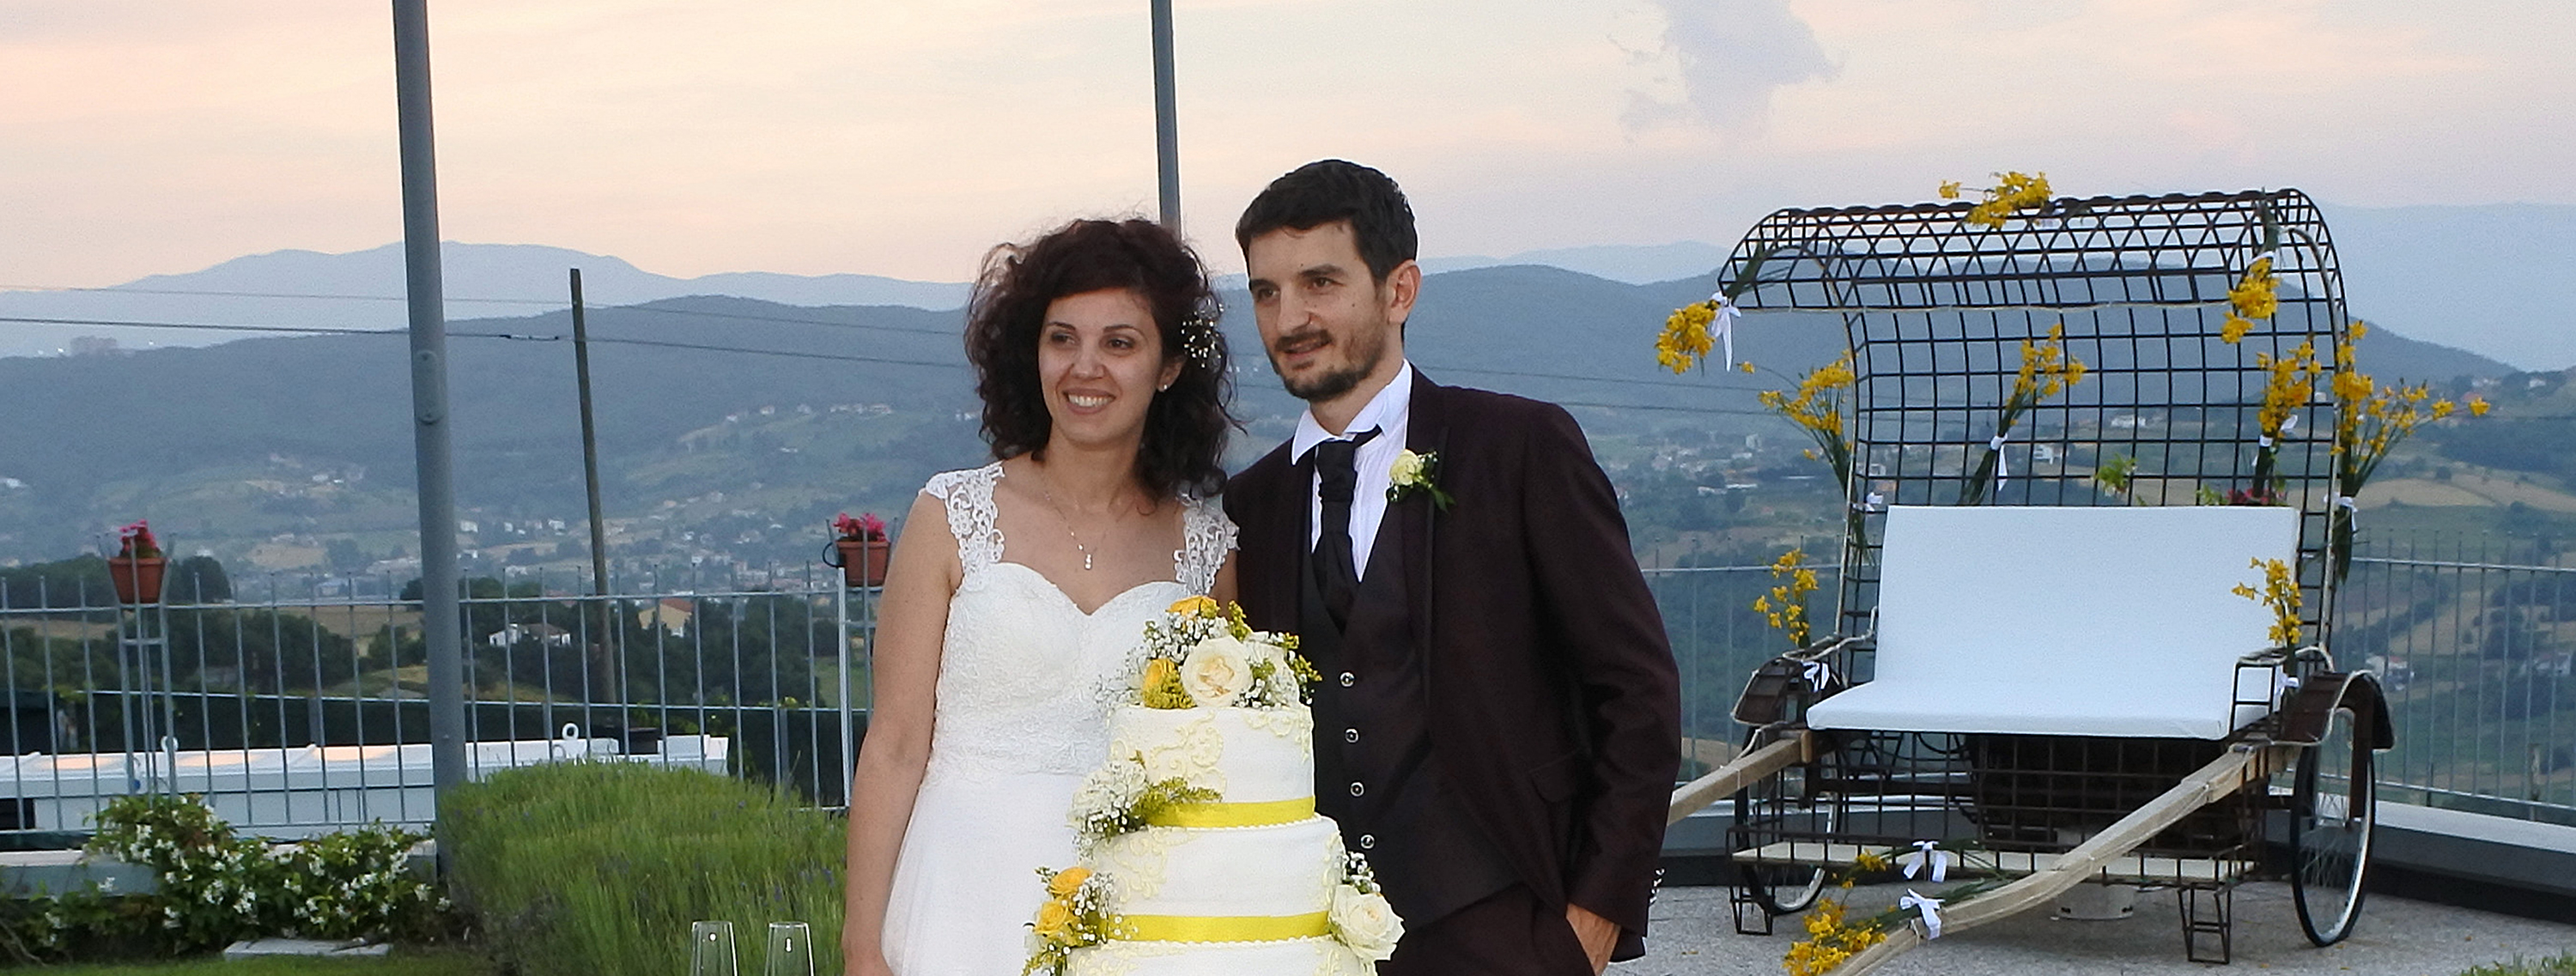 Matrimonio di Francesco e Antonia